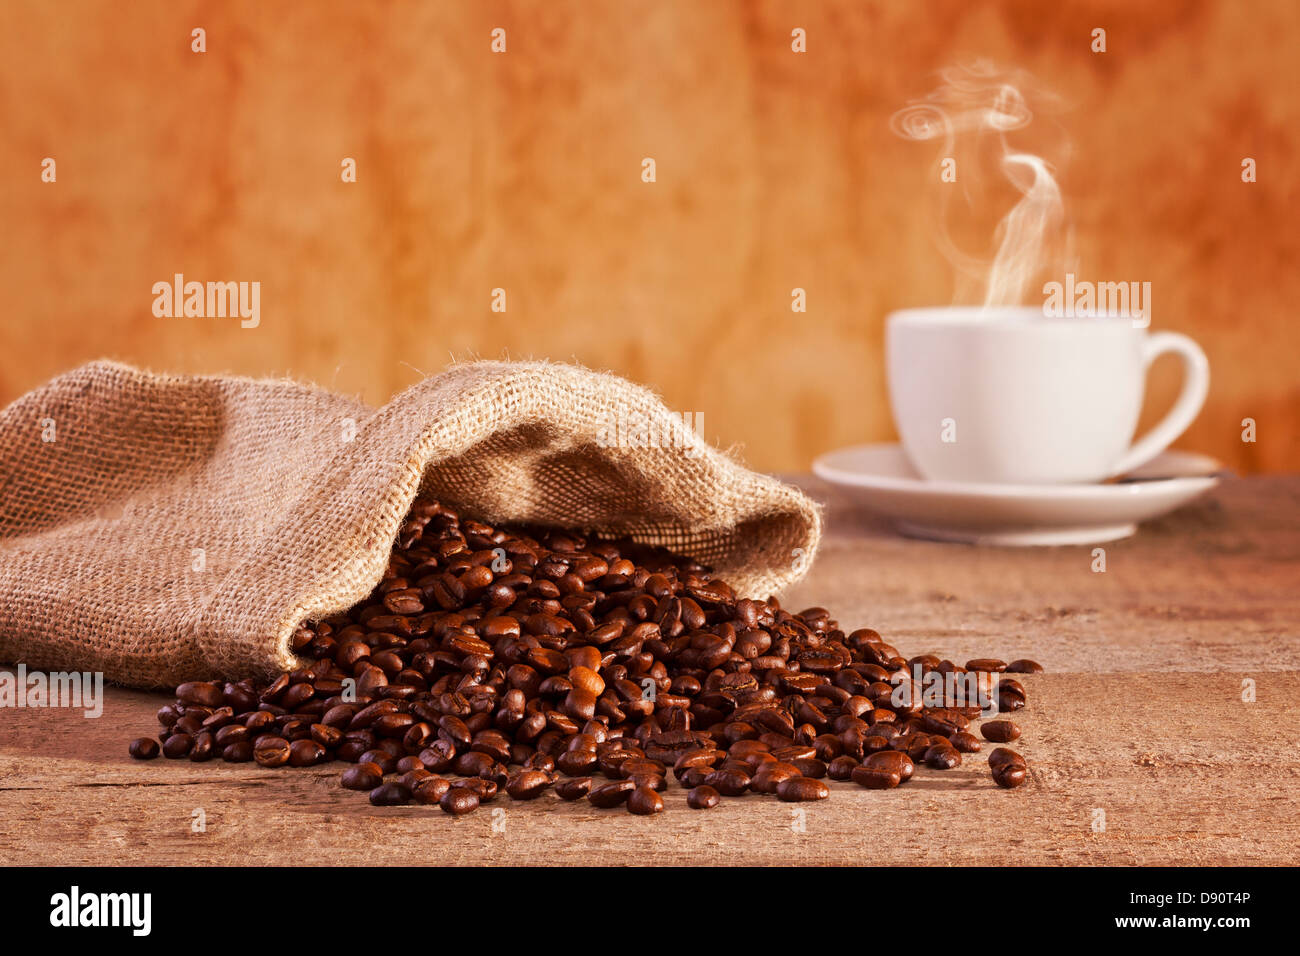 Coffee Beans and Burlap Sack - roasted coffee beans spilling from a burlap sack, cup of coffee with visible steam... - Stock Image